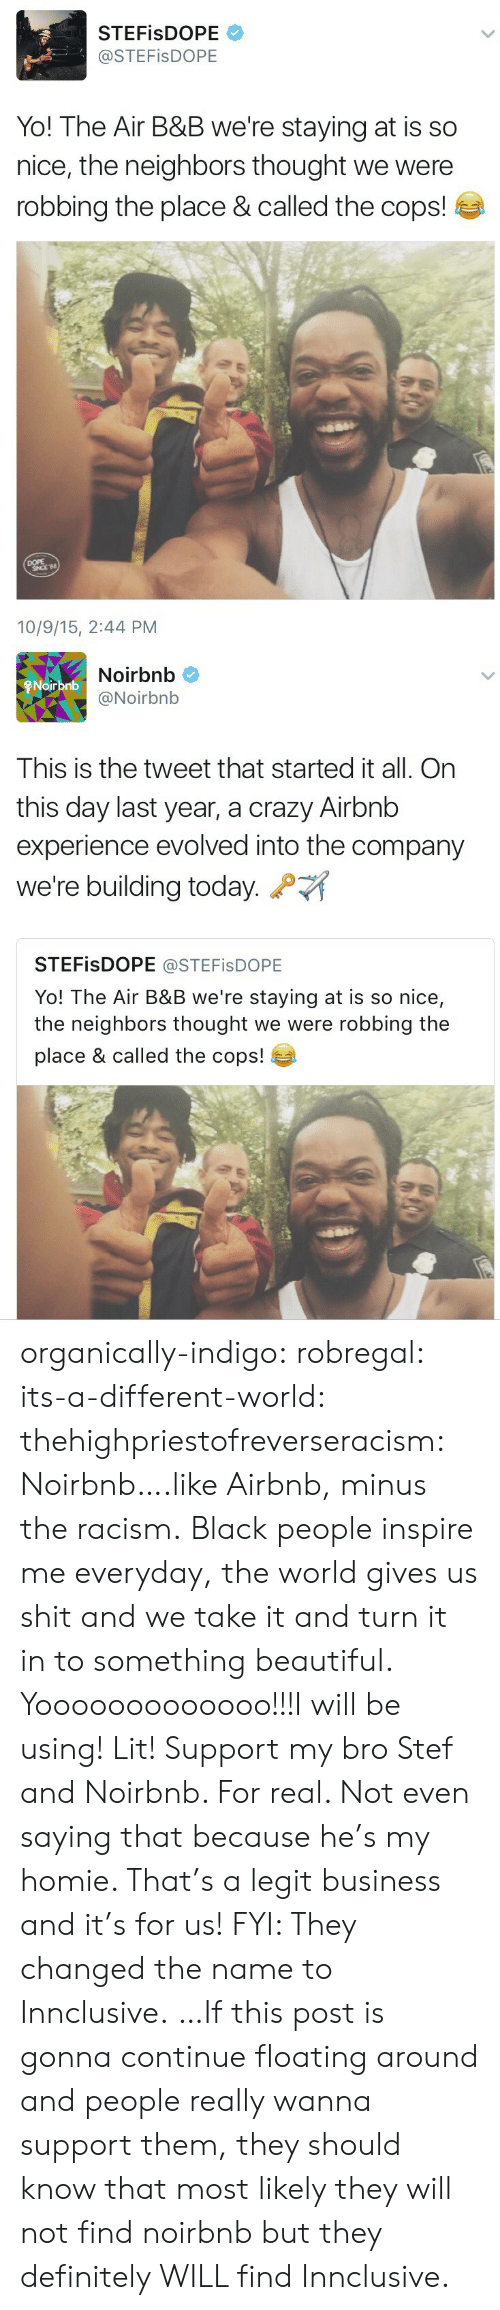 Beautiful, Crazy, and Definitely: STEFisDOPE  @STEFisDOPE  Yo! The Air B&B we're staying at is so  nice, the neighbors thought we were  robbing the place & called the cops!  DOPE  10/9/15, 2:44 PM   Noirbnb  @Noirbnb  Noirbnb  This is the tweet that started it all. On  this day last year, a crazy Airbnb  experience evolved into the company  we're building today.  STEFisDOPE @STEFisDOPE  Yo! The Air B&B we're staying at is so nice,  the neighbors thought we were robbing the  place & called the cops! organically-indigo:  robregal:  its-a-different-world:  thehighpriestofreverseracism:  Noirbnb….like Airbnb, minus the racism.  Black people inspire me everyday, the world gives us shit and we take it and turn it in to something beautiful.  Yooooooooooooo!!!I will be using! Lit!  Support my bro Stef and Noirbnb. For real. Not even saying that because he's my homie. That's a legit business and it's for us!   FYI: They changed the name to Innclusive. …If this post is gonna continue floating around and people really wanna support them, they should know that most likely they will not find noirbnb but they definitely WILL find Innclusive.